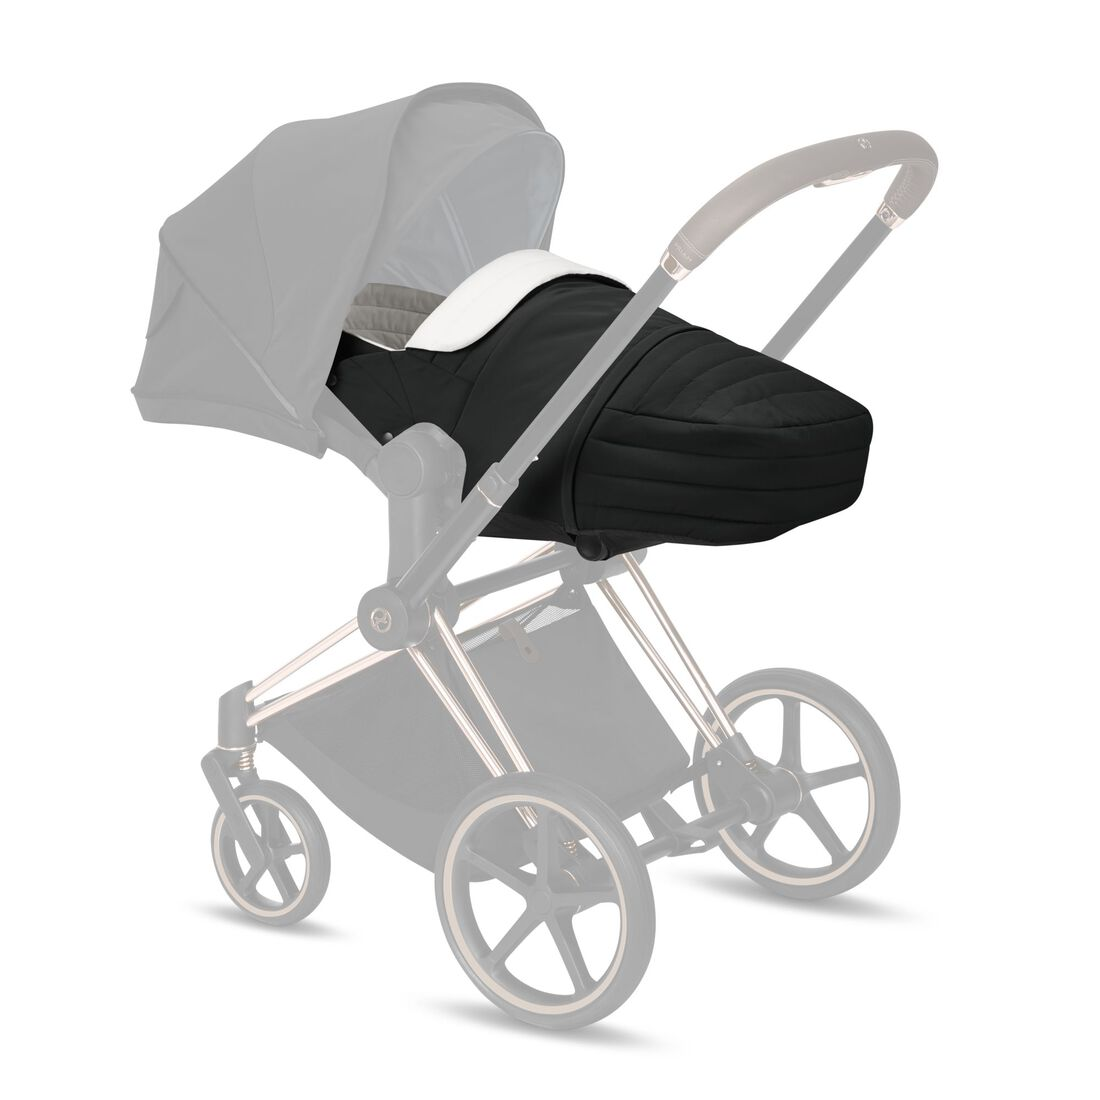 CYBEX Konfiguration Priam 4-in-1 Reisesystem in  large Bild 10